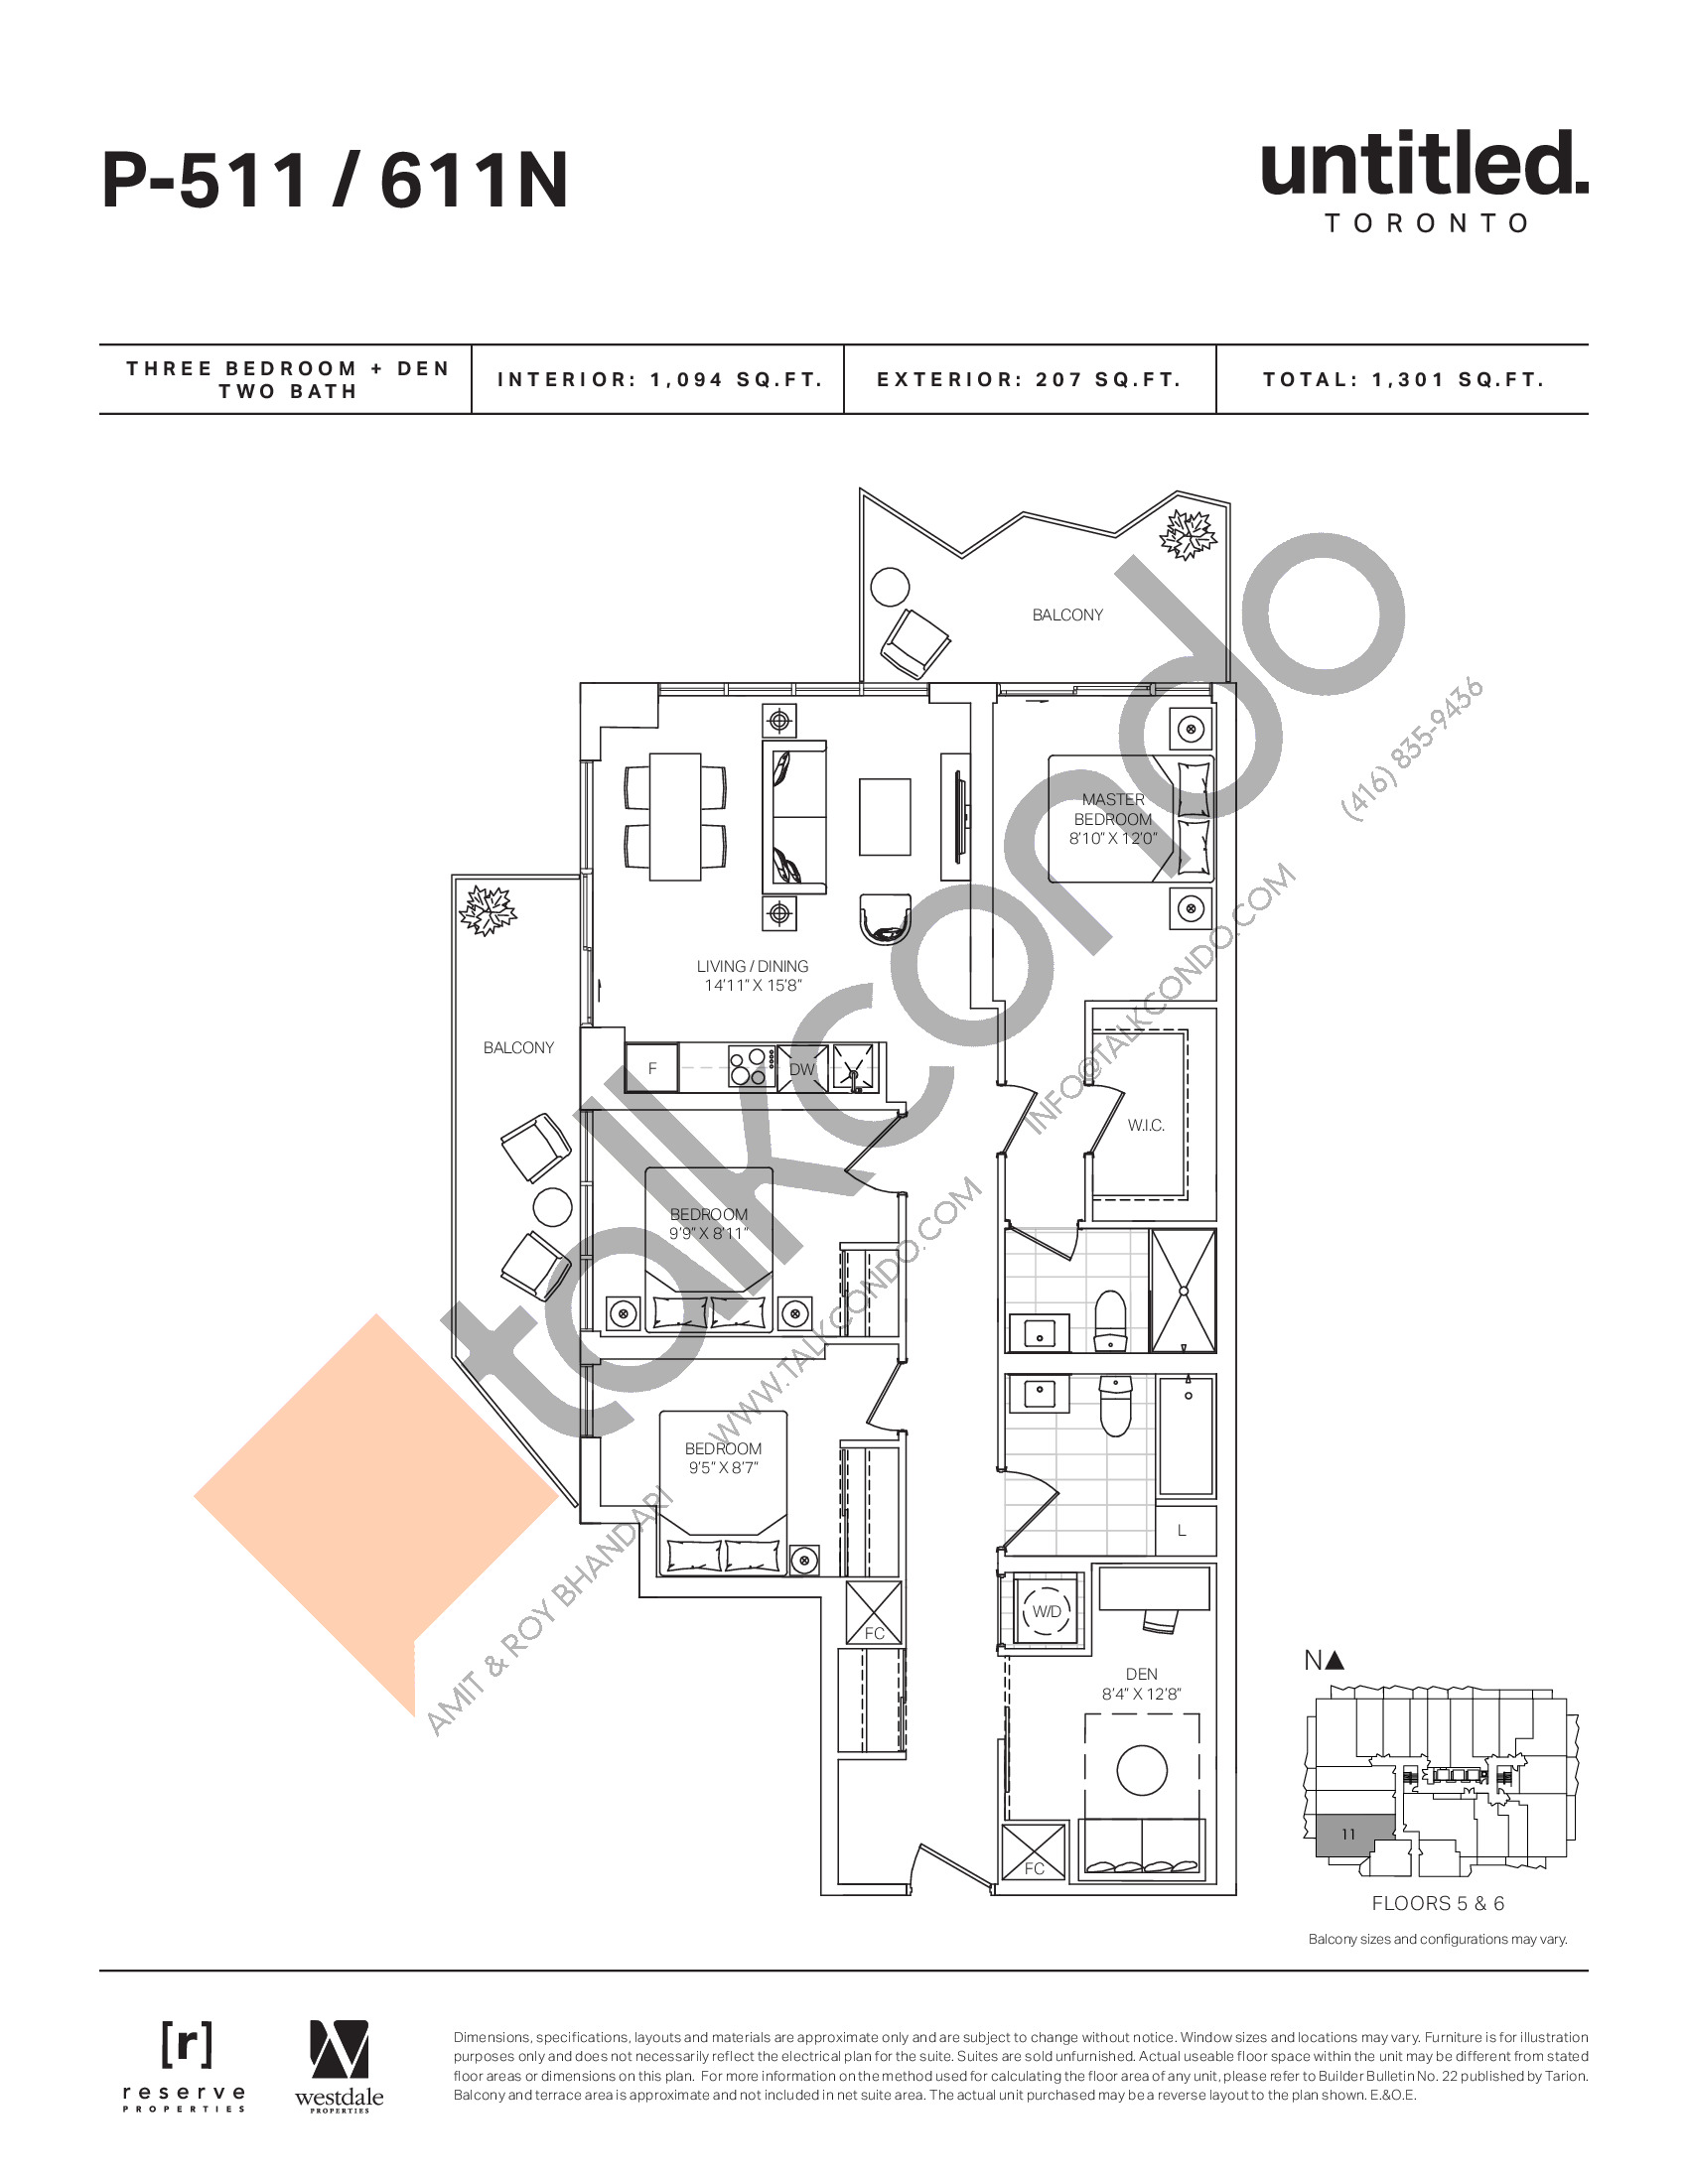 P-511/611N Floor Plan at Untitled North Tower Condos - 1094 sq.ft